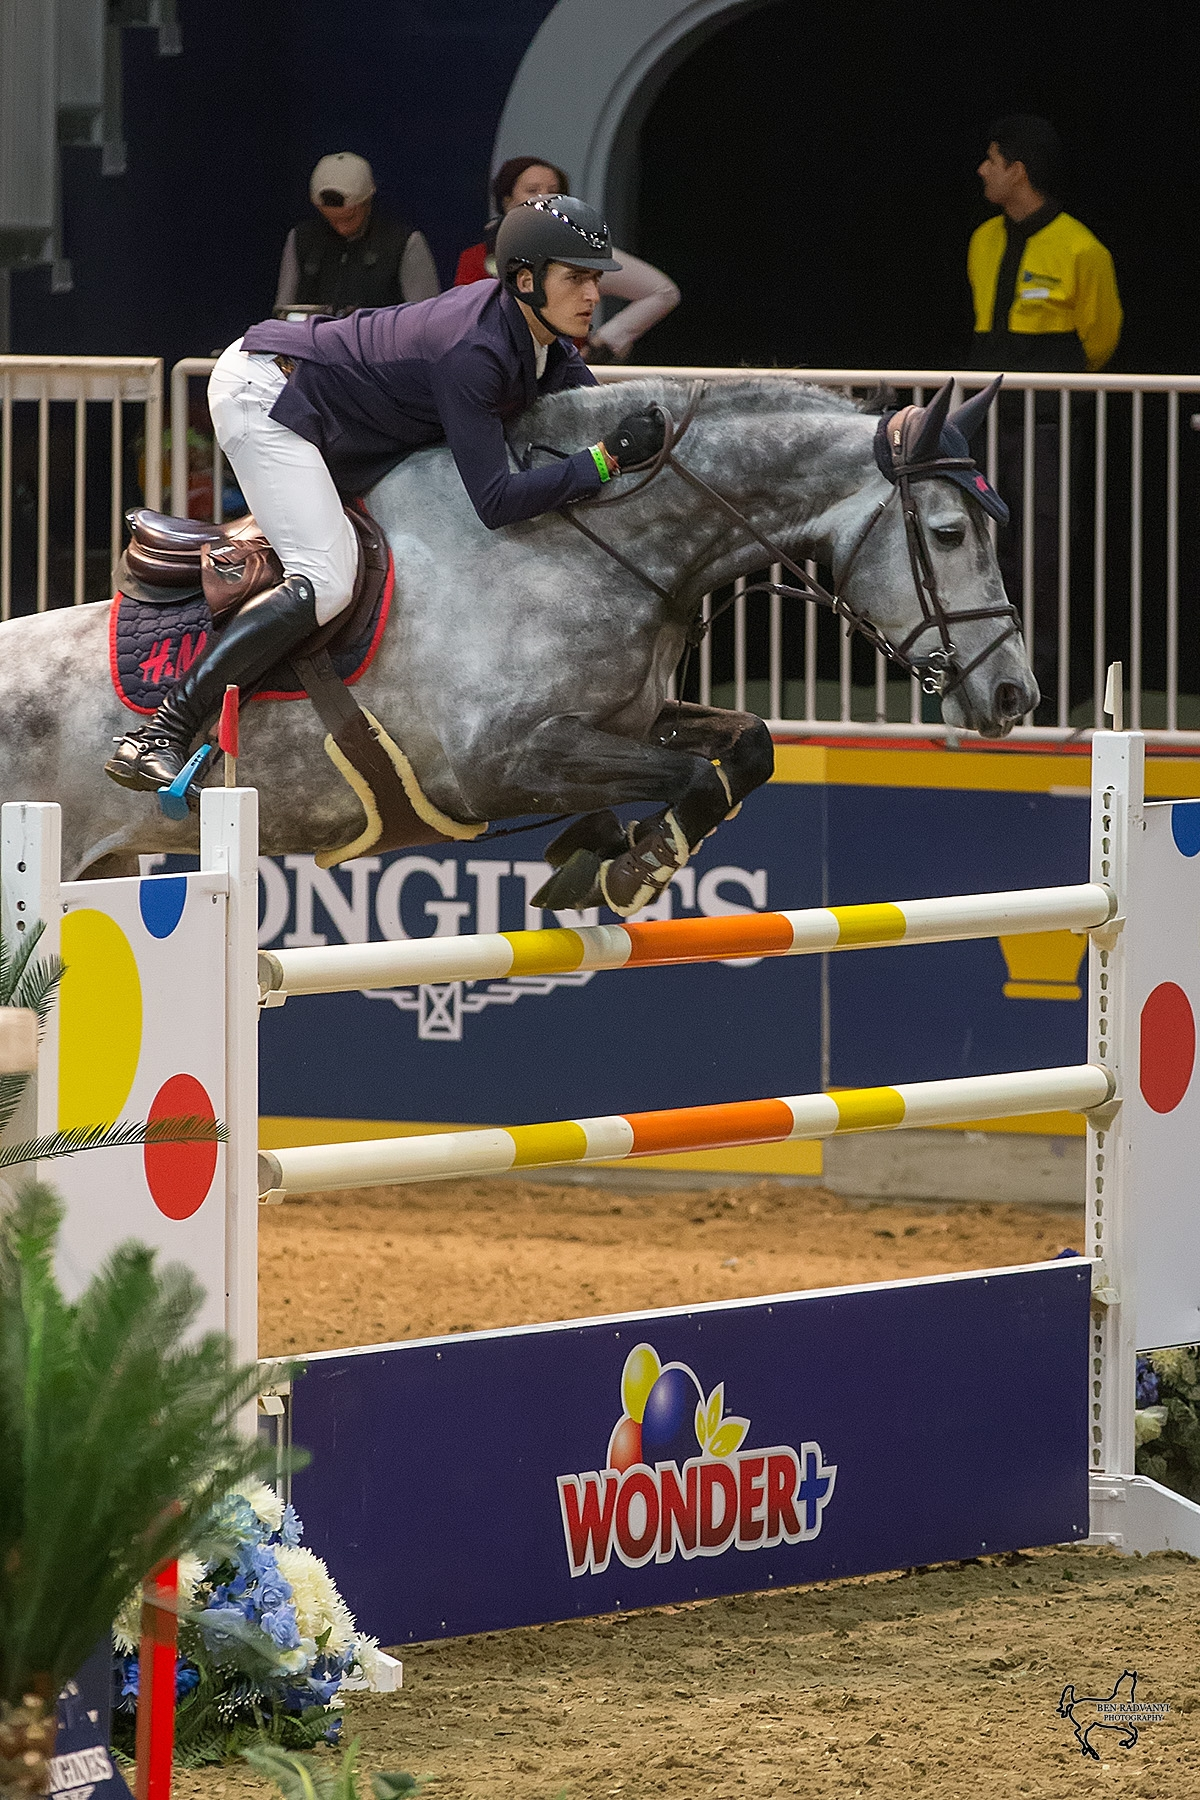 Belgium's Nicola Philippaerts claimed victory riding H&M Harley vd Bisschop in the $50,000 Weston Canadian Open held Friday night, November 13, at the Royal Horse Show®. <br><b>Photo by <a href='http://benradvanyi.photoshelter.com/#!/index/' target='_blank'>Ben Radvanyi Photography</a></b>